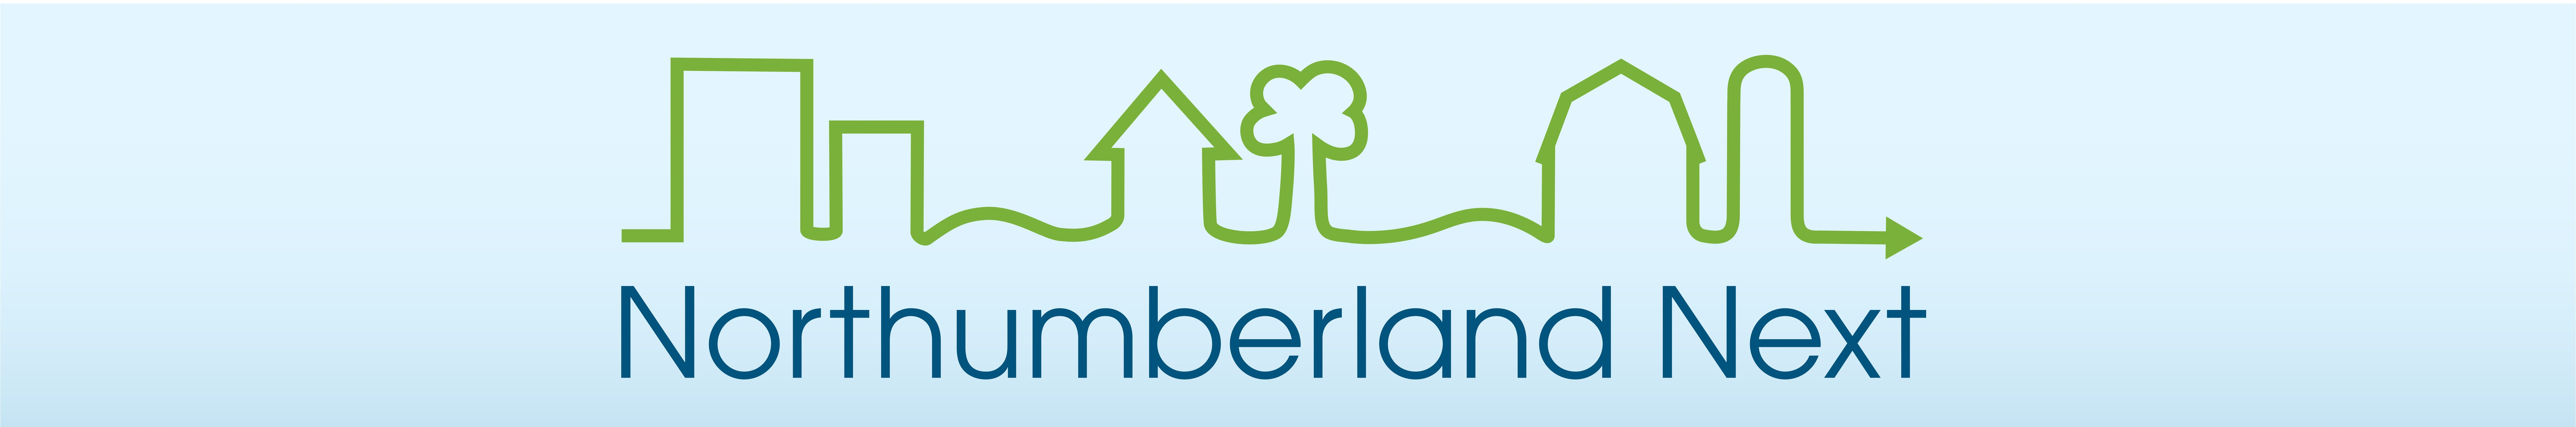 Northumberland Next logo with a line drawing of urban, rural and agriculture communities